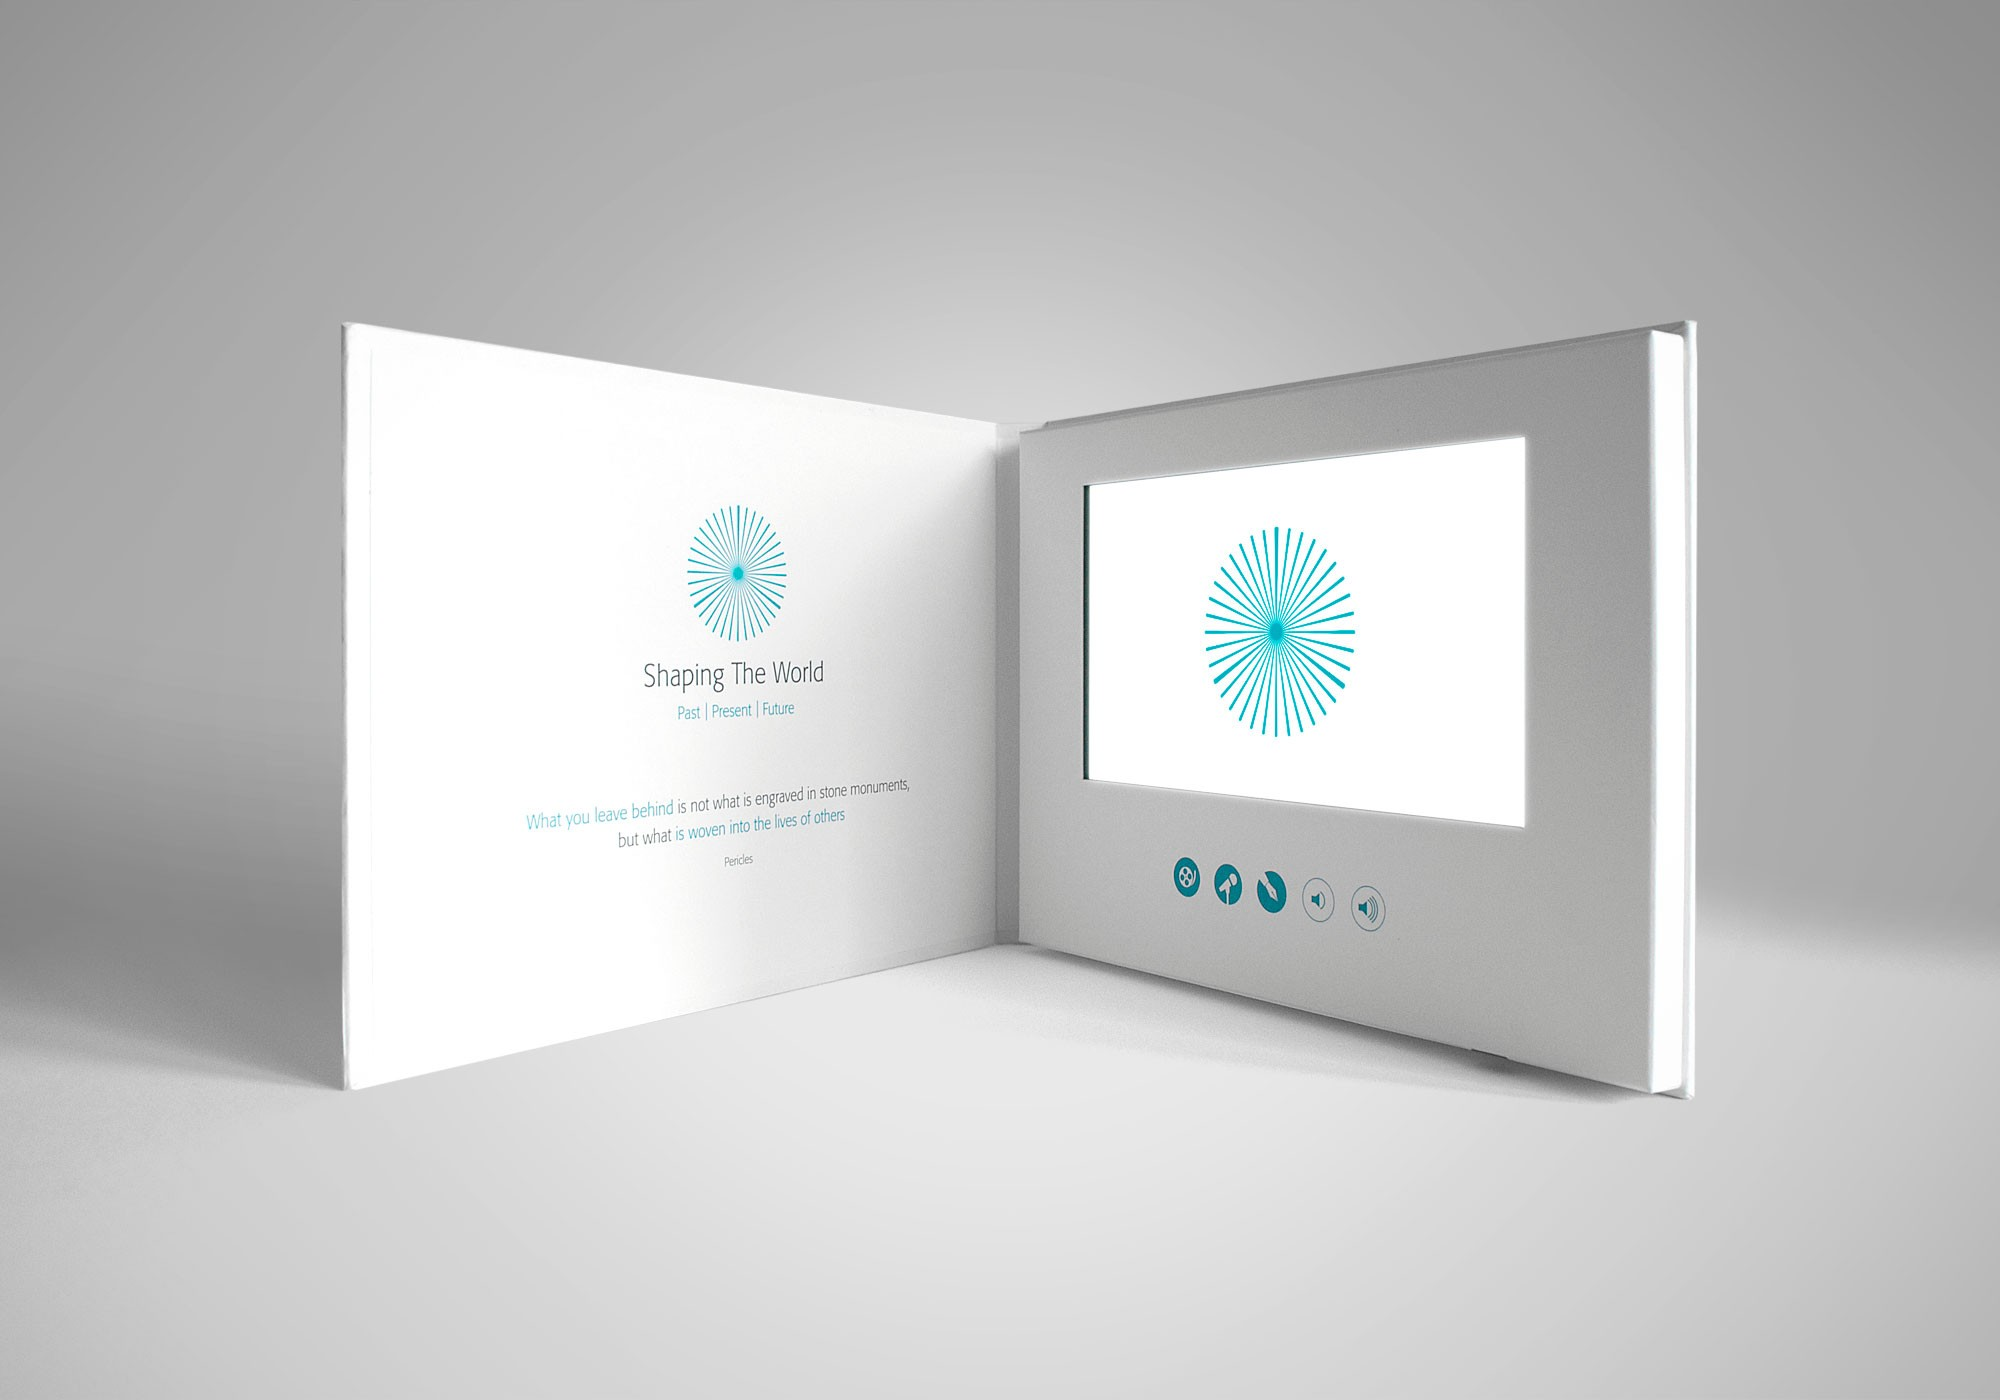 Luxury Video Brochure     Boutique Creative Agency     SO White Img Bg Luxury video brochure for global charity campaign